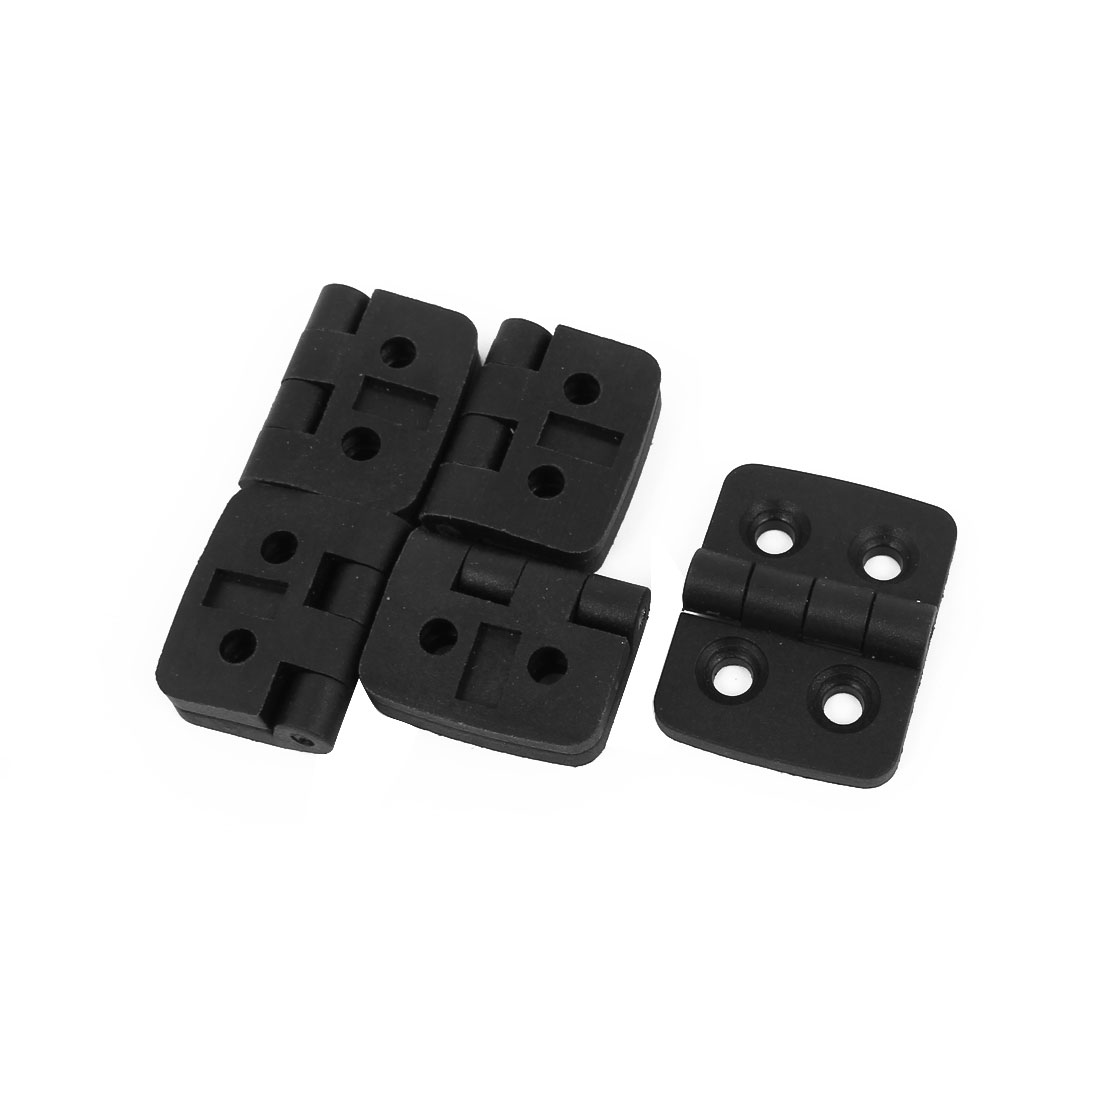 41mmx31mmx9mm Plastic 4 Countersunk Holes Ball Bearing Butt Hinge Black 5pcs